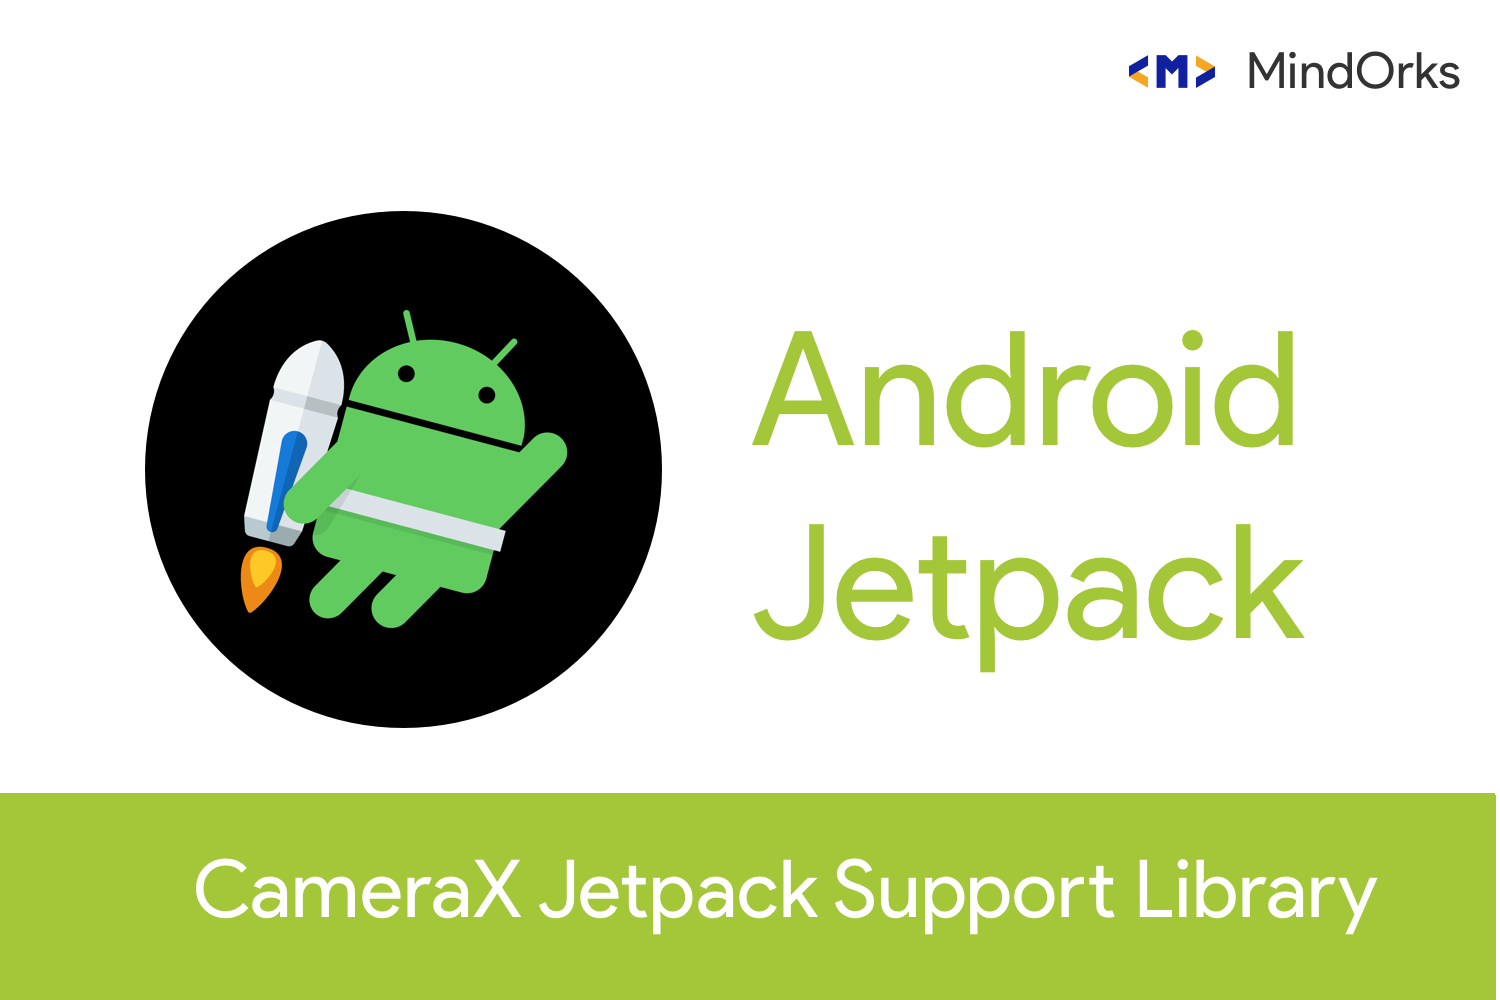 Getting Started With CameraX Jetpack Support Library